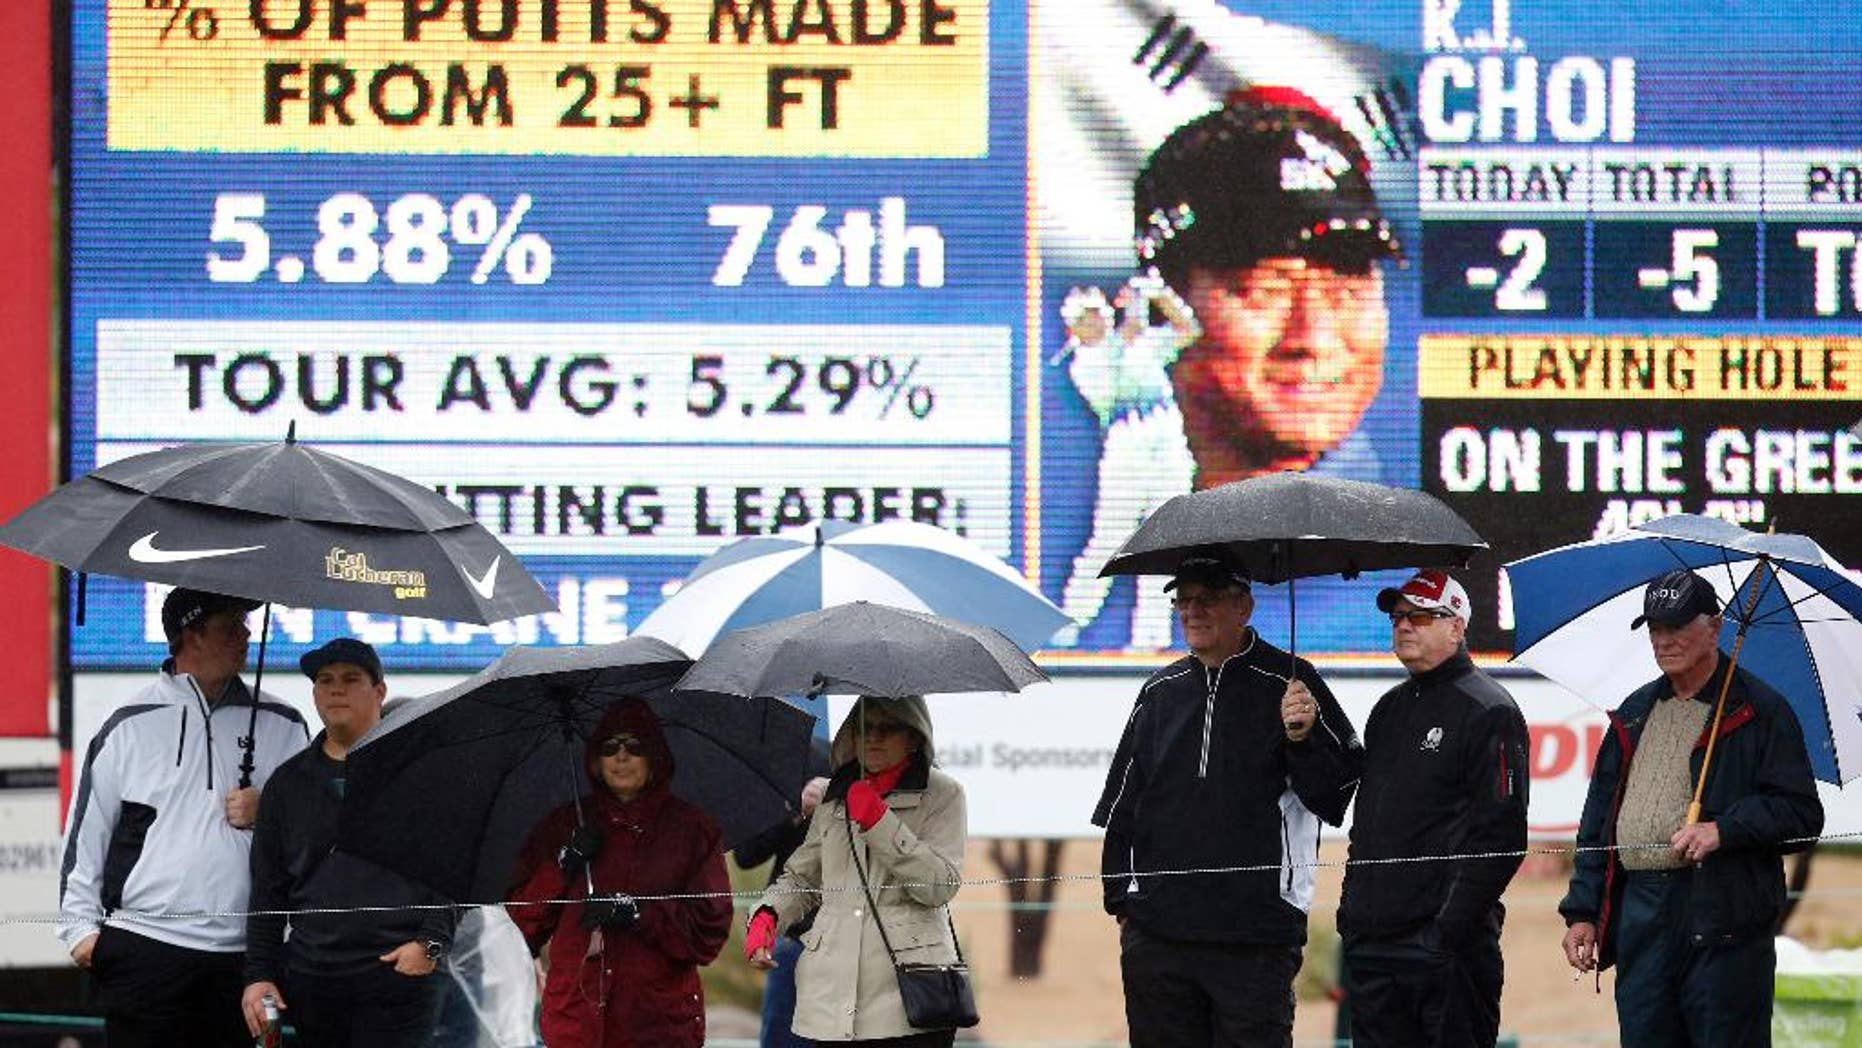 Fans, holding umbrellas, line up in front of the ninth hole during the second round of the Phoenix Open golf tournament, Friday, Jan. 30, 2015, in Scottsdale, Ariz. (AP Photo/Rick Scuteri)